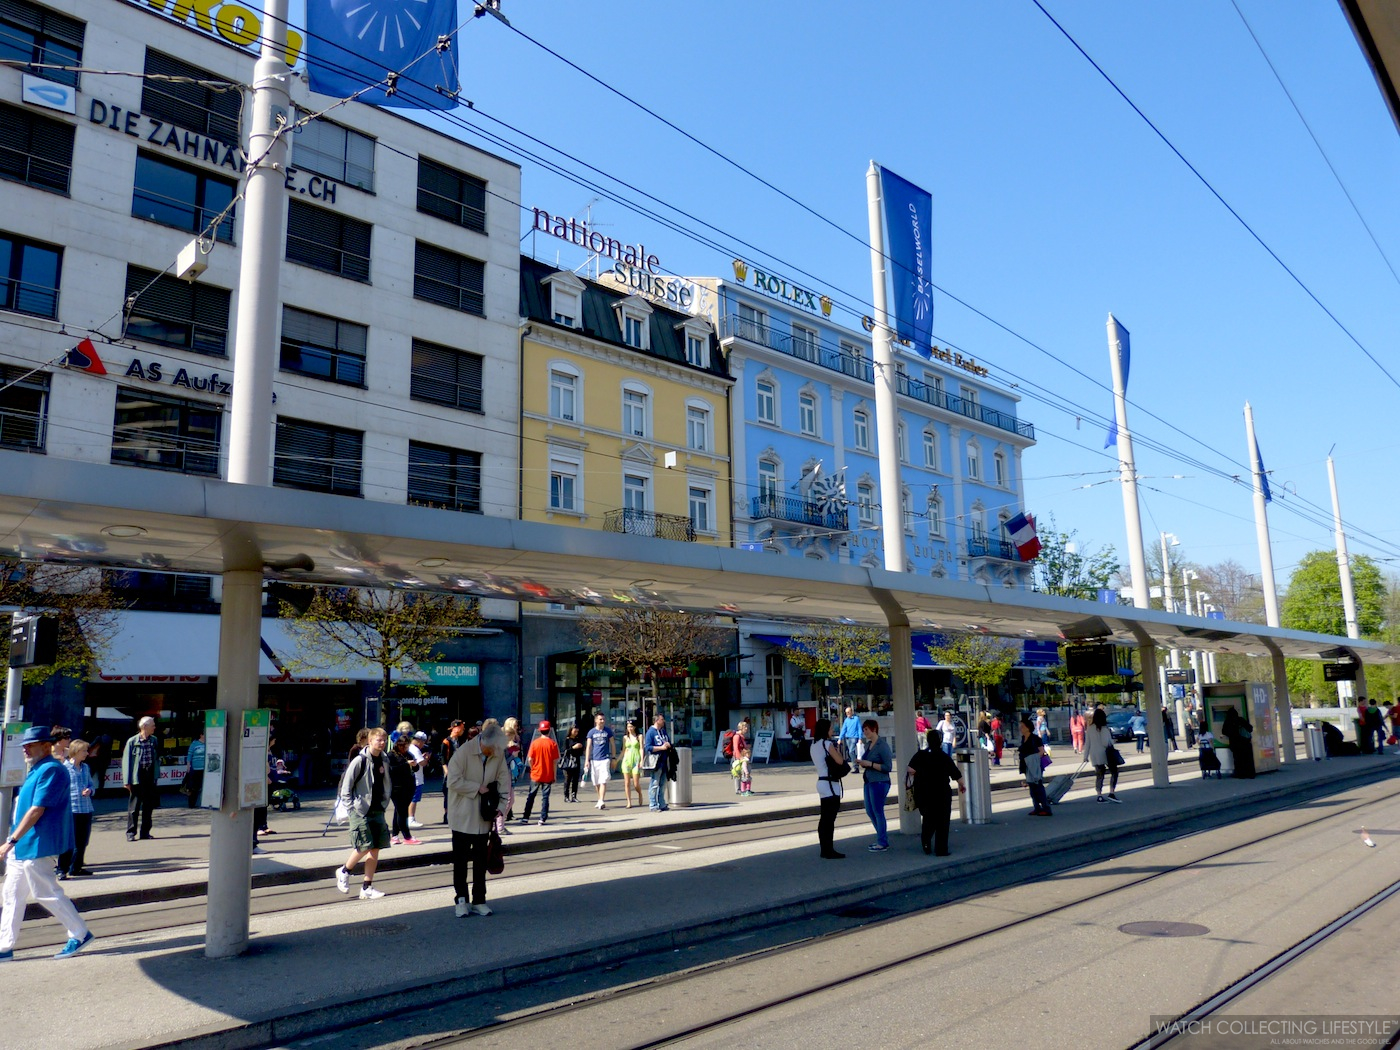 Time to get on the tram to the Messeplatz/Exhibition Square. We are 10 minutes away.